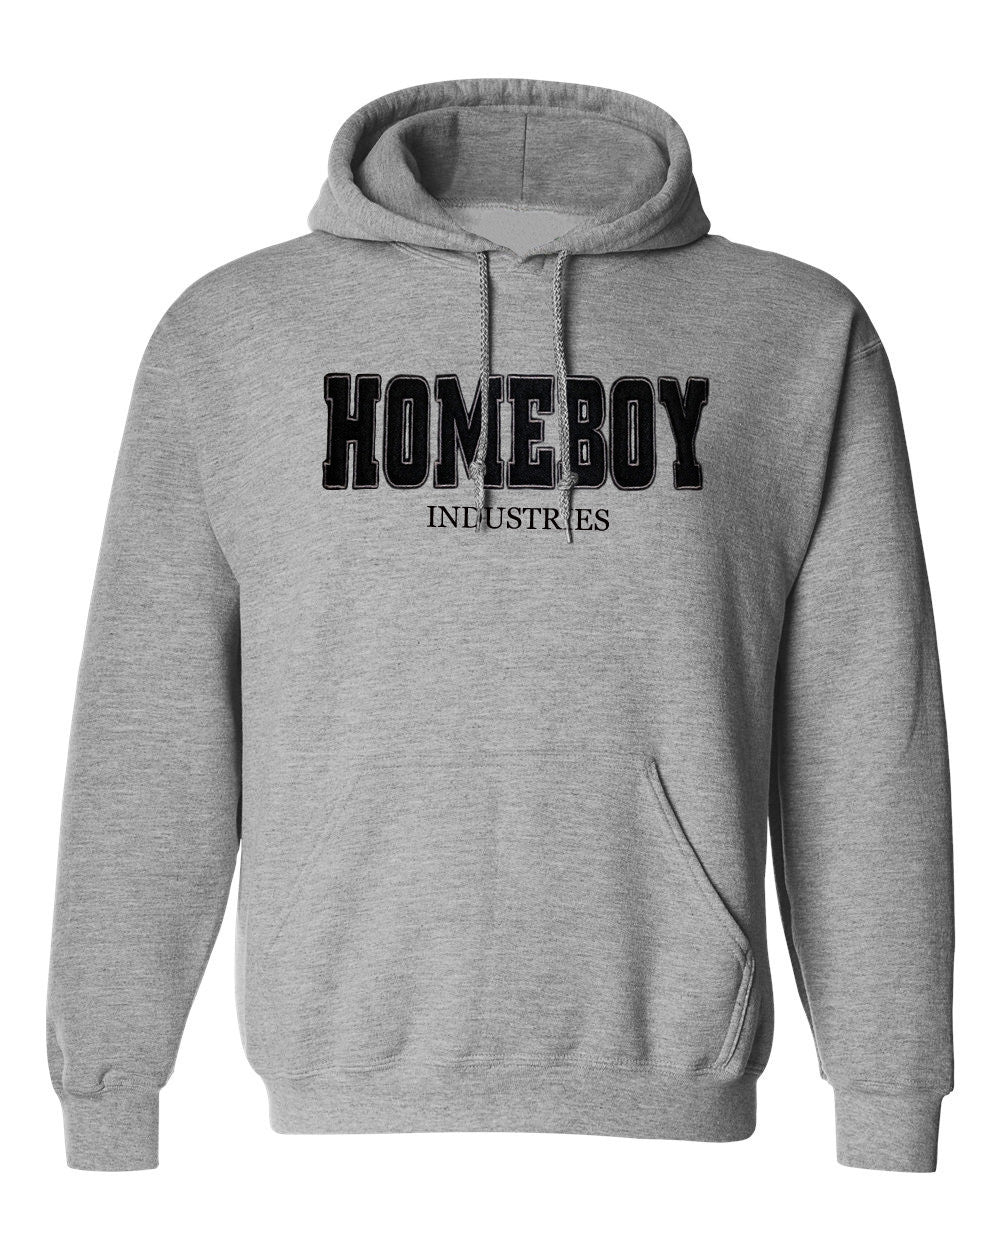 Homeboy Collegian Hooded Sweatshirt